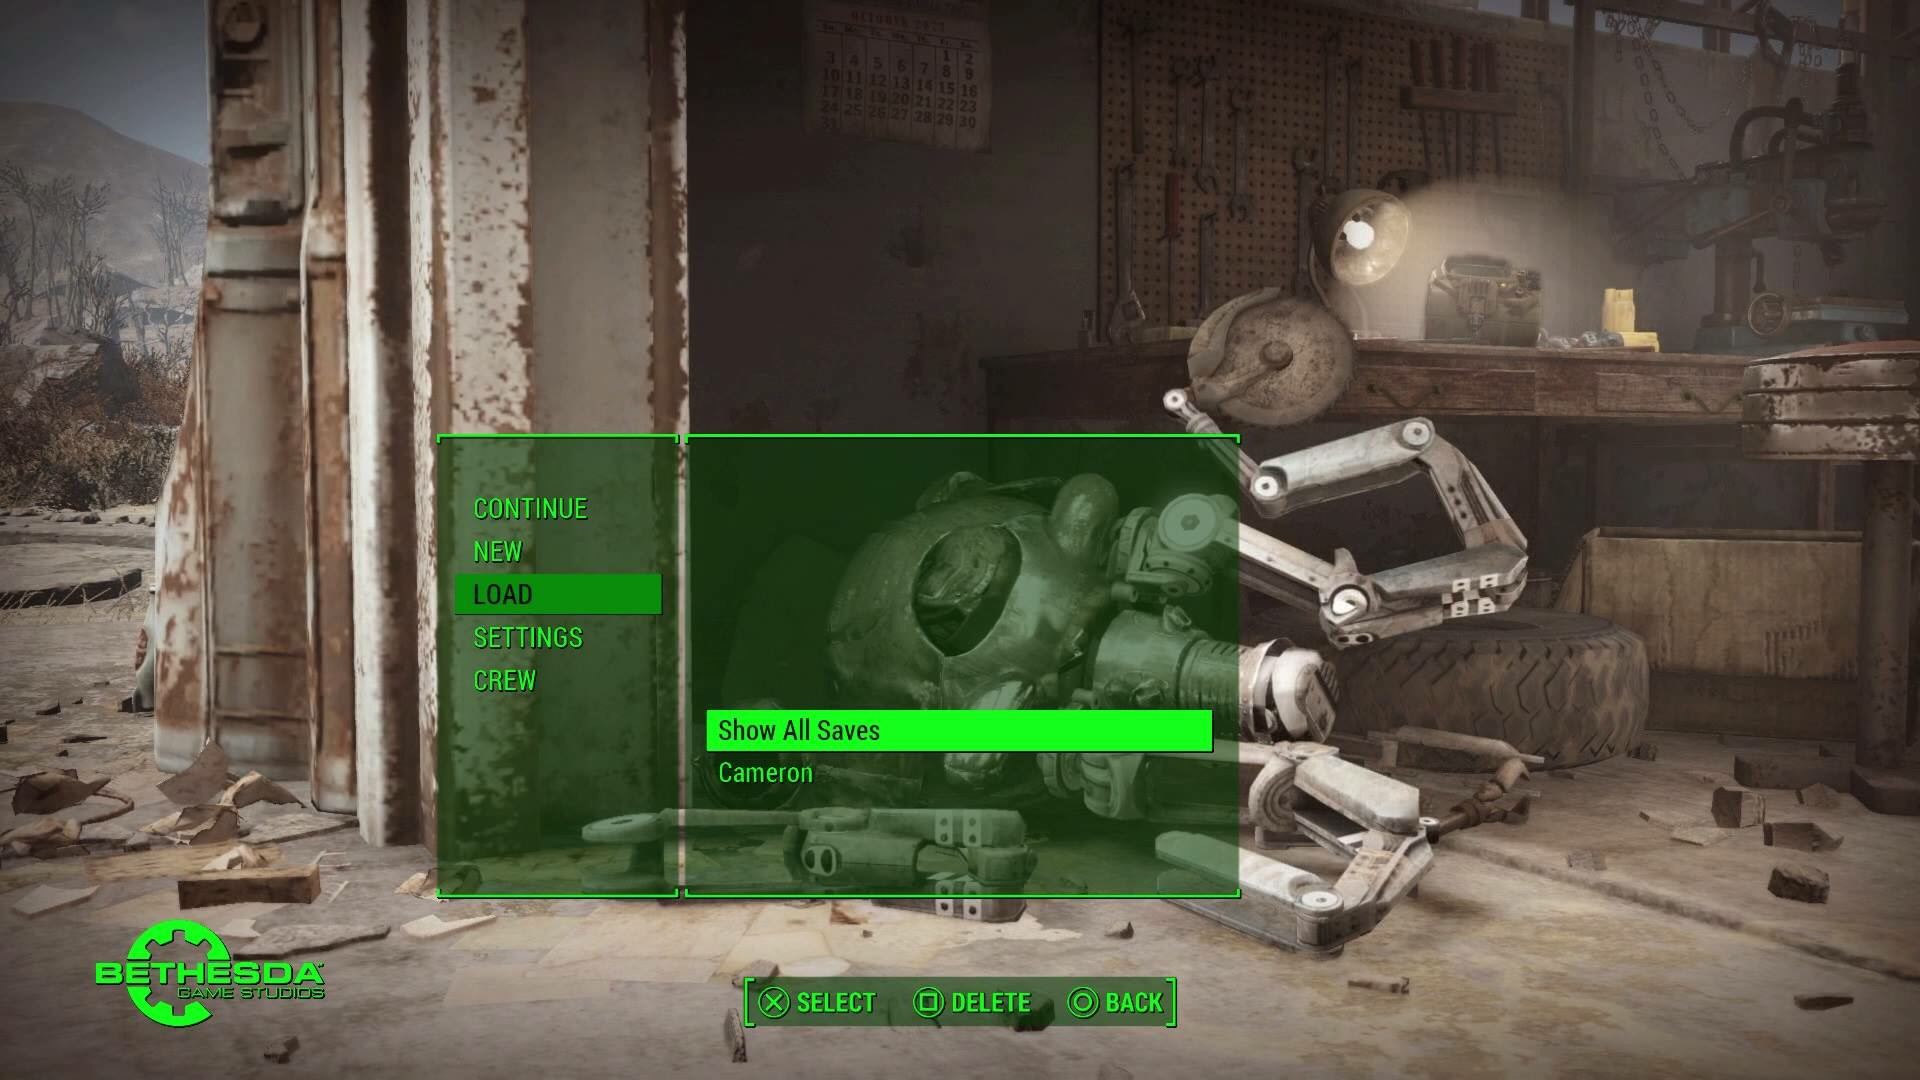 Fallout 4 Performance On PS4 Initial Impression, Multiple